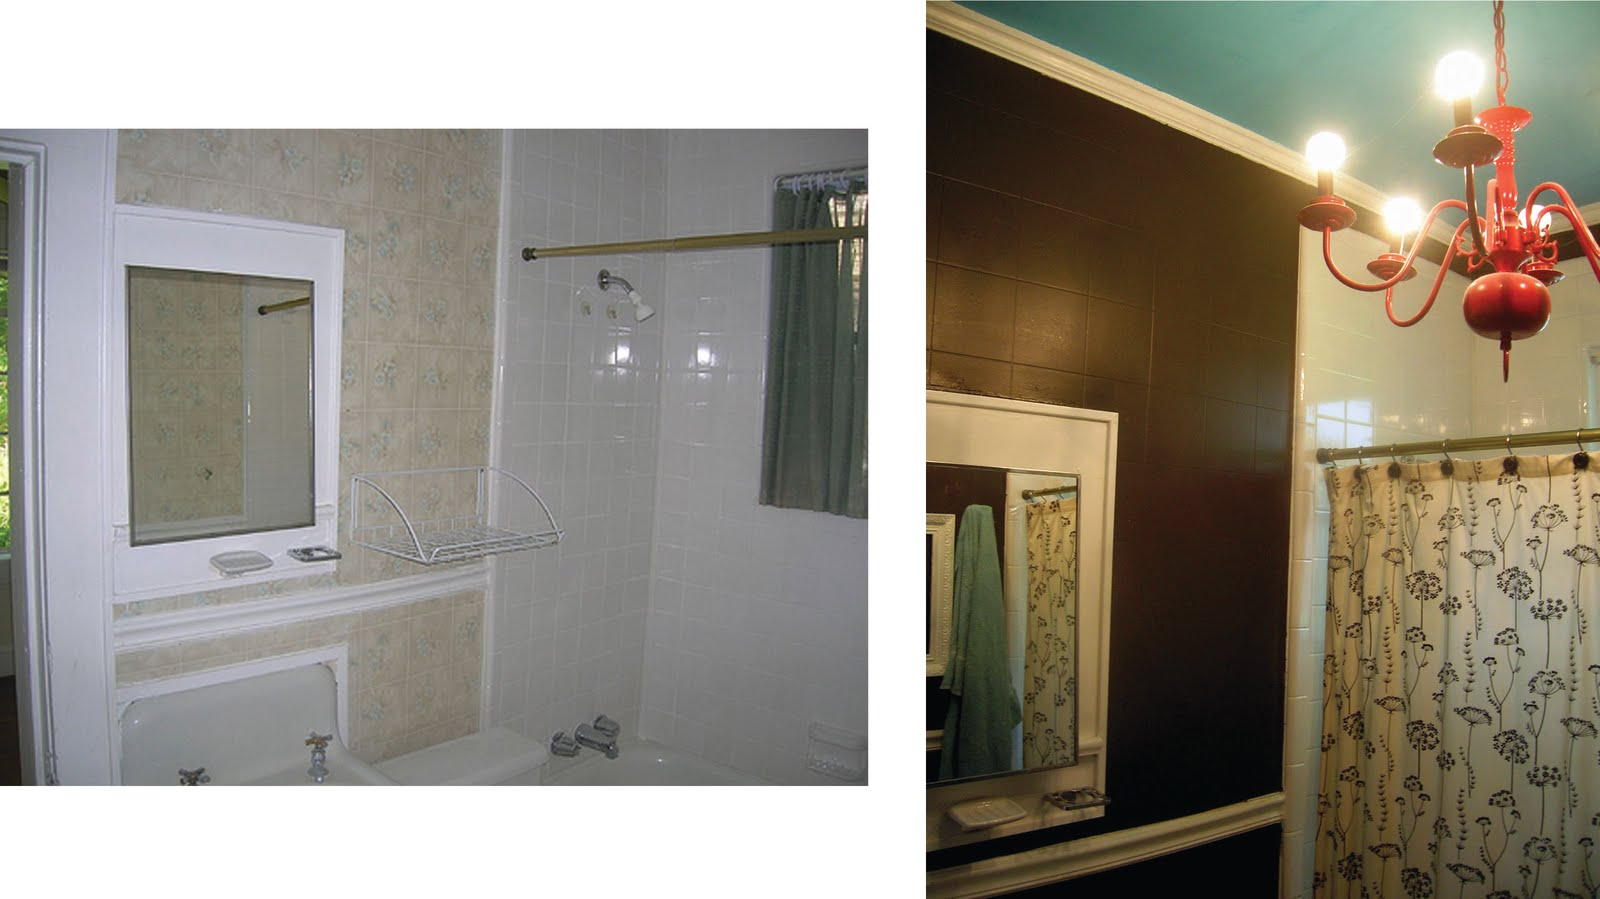 Melissa Does Creative: The New Bathroom: Jailhouse Rock Style